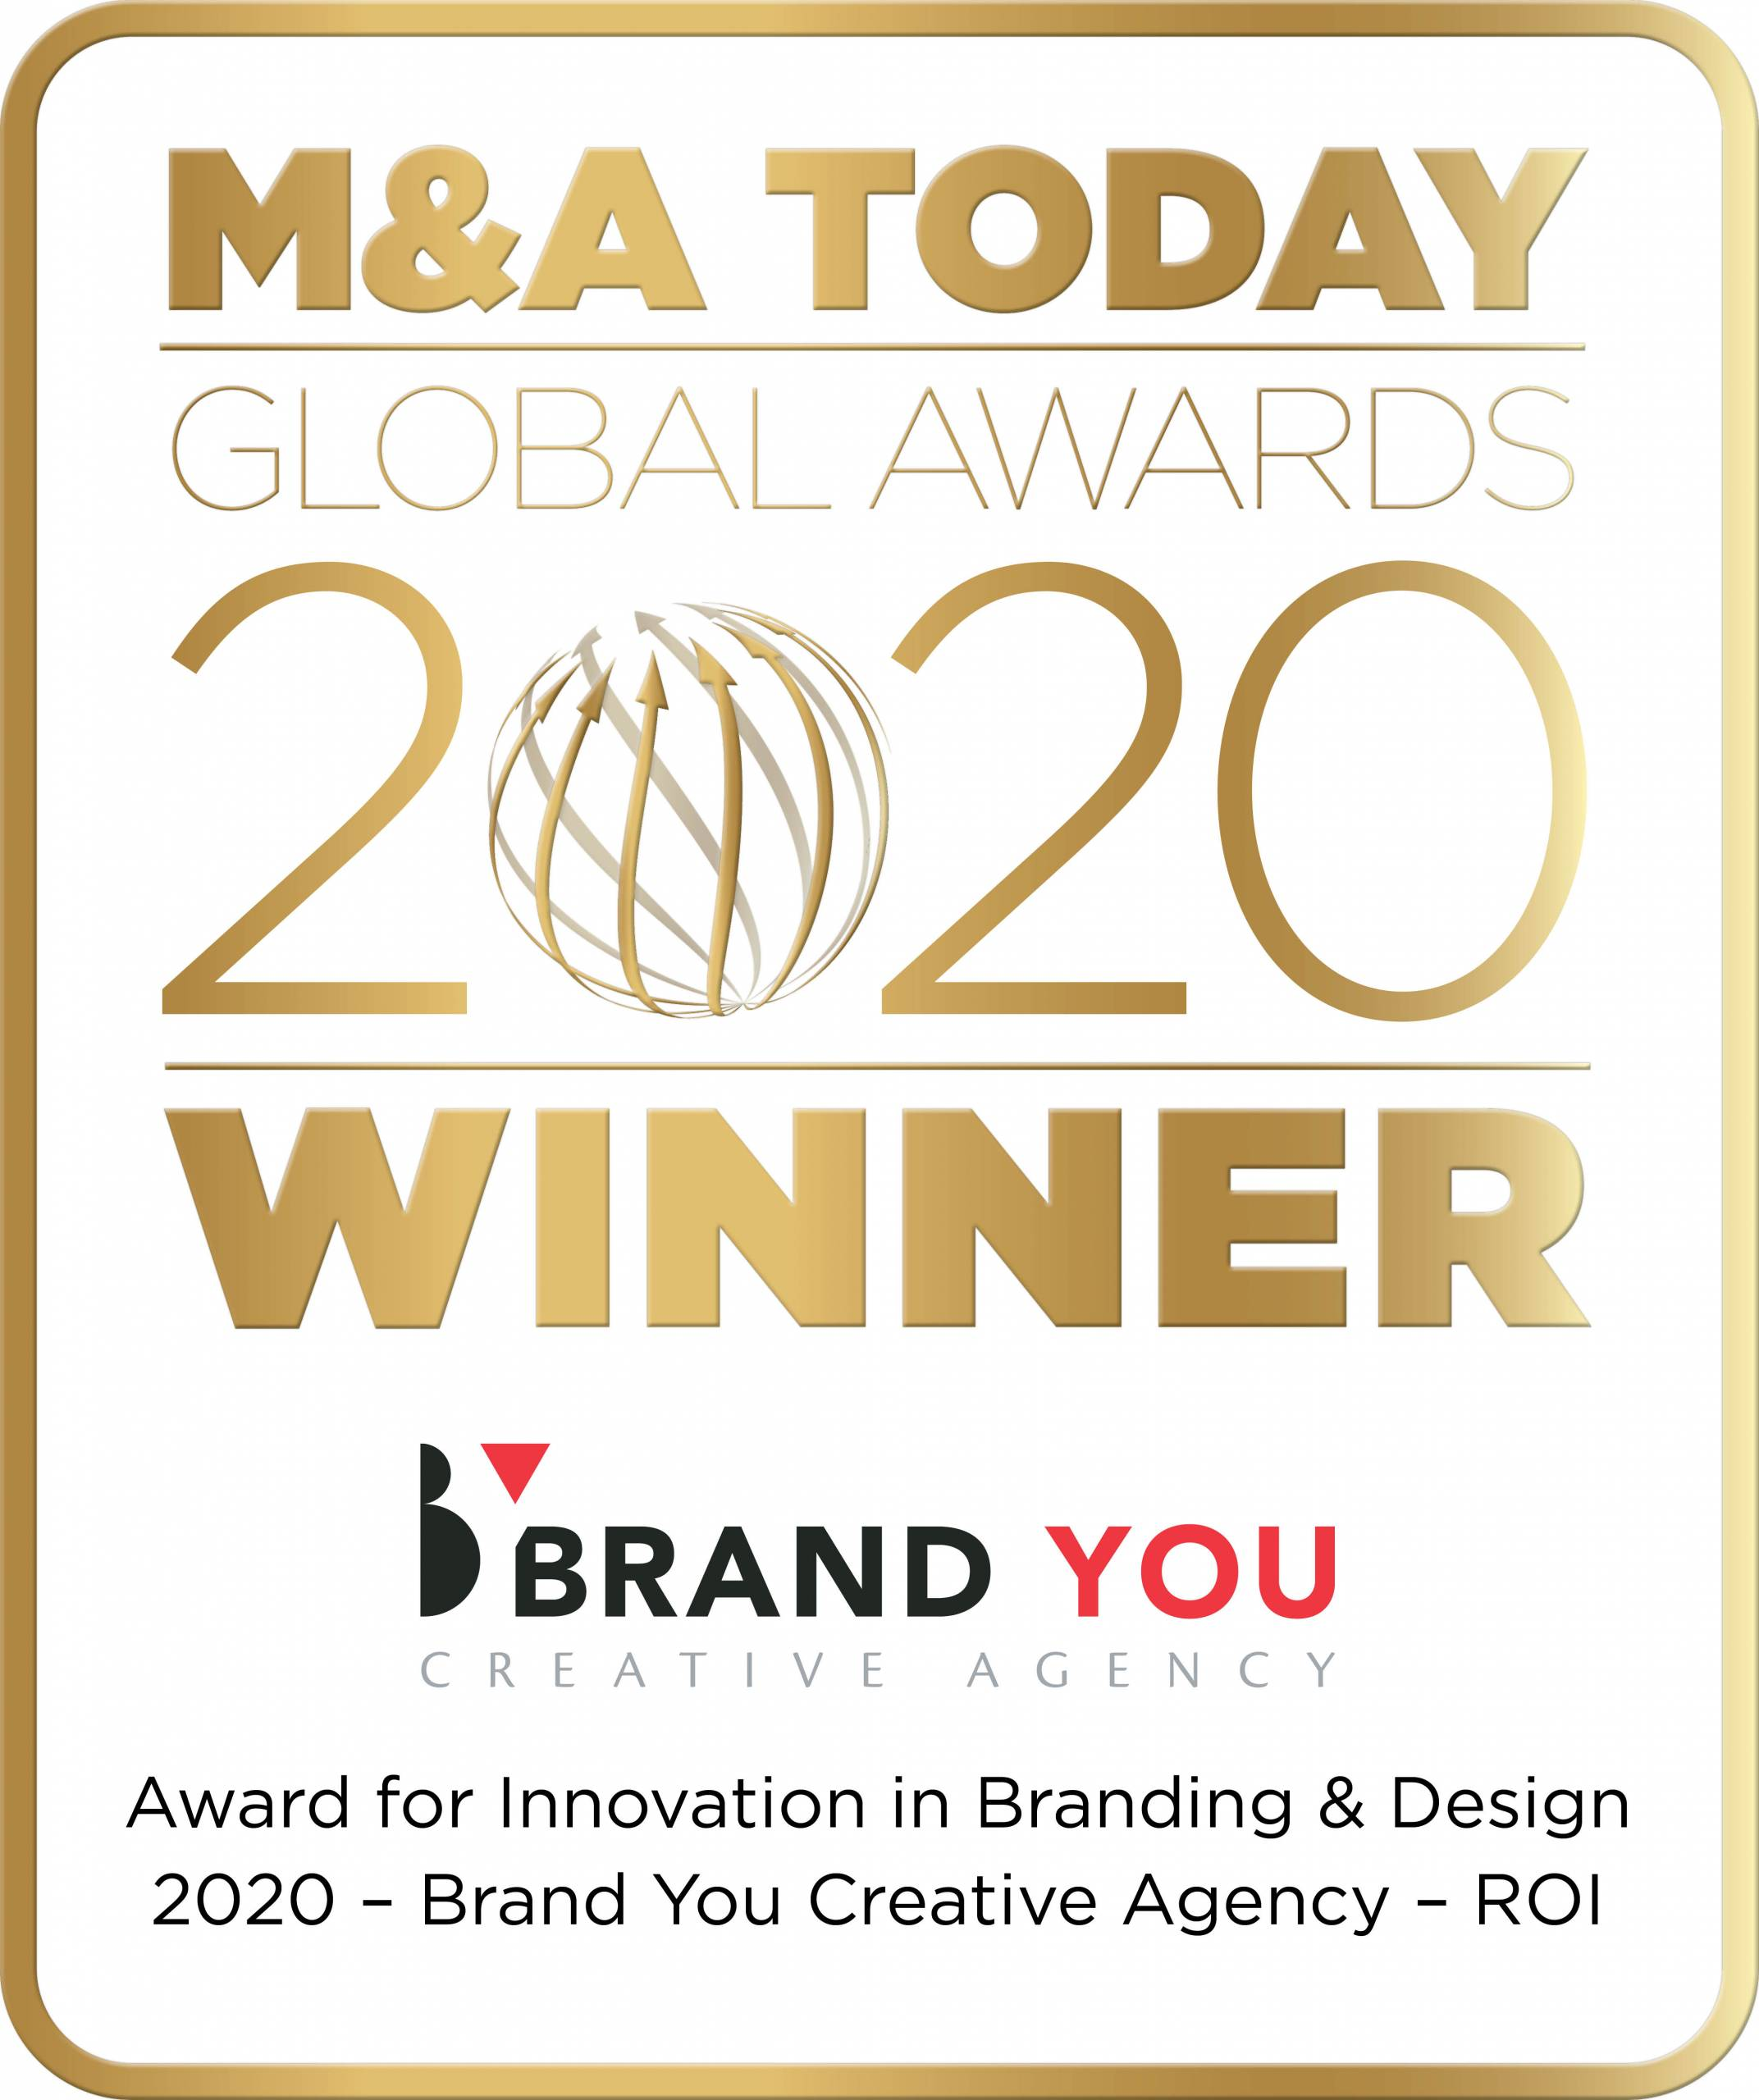 MA-Today-Global-Awards-logo-2020_Brand-You-Creative-Agency_v2